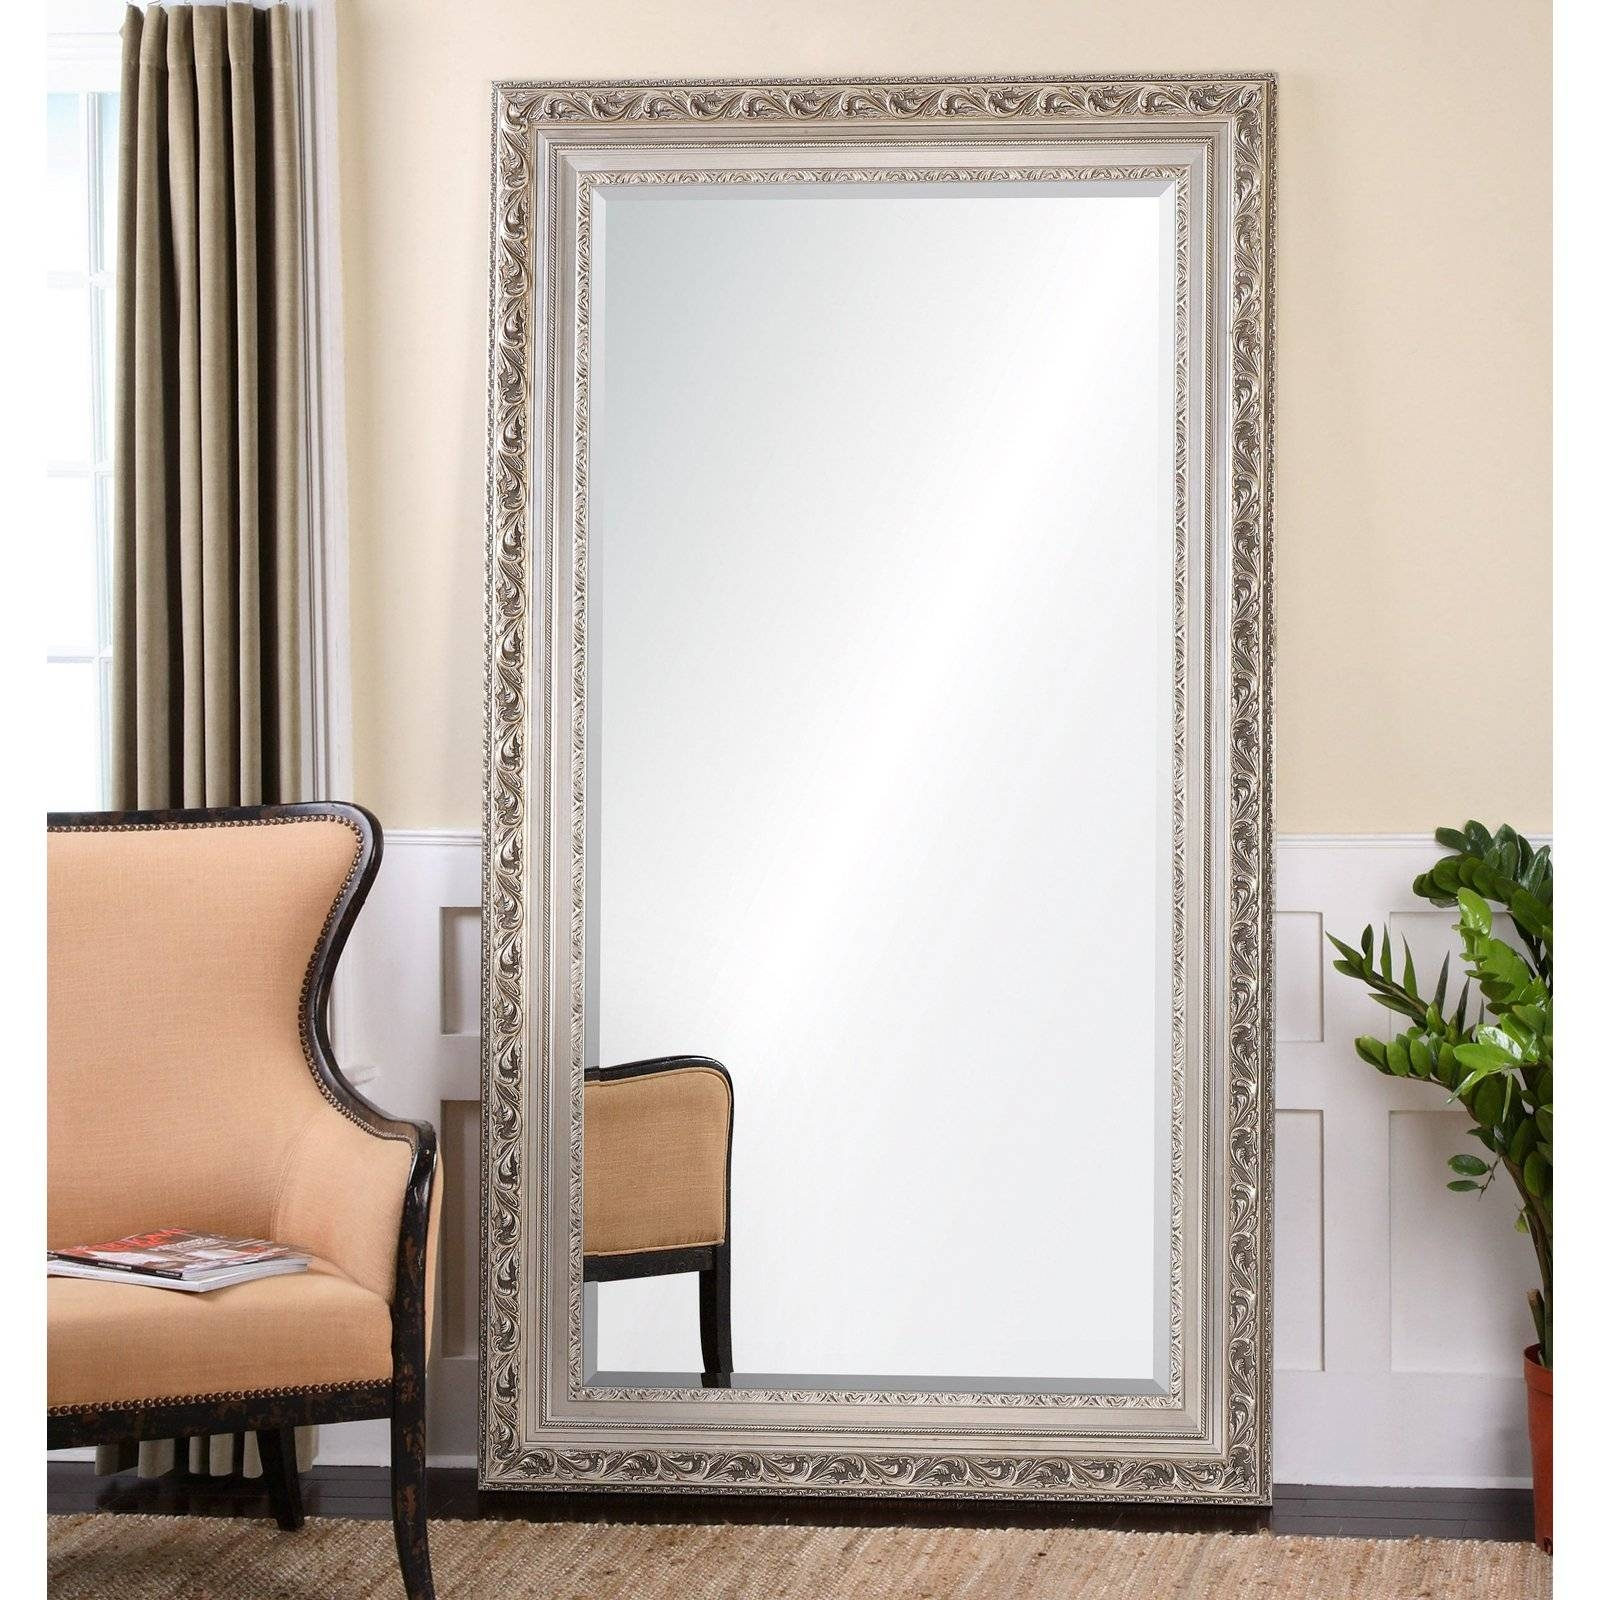 Cheap Oversized Wall Mirrors 74 Outstanding For Large Silver Art pertaining to Big Silver Mirrors (Image 11 of 25)